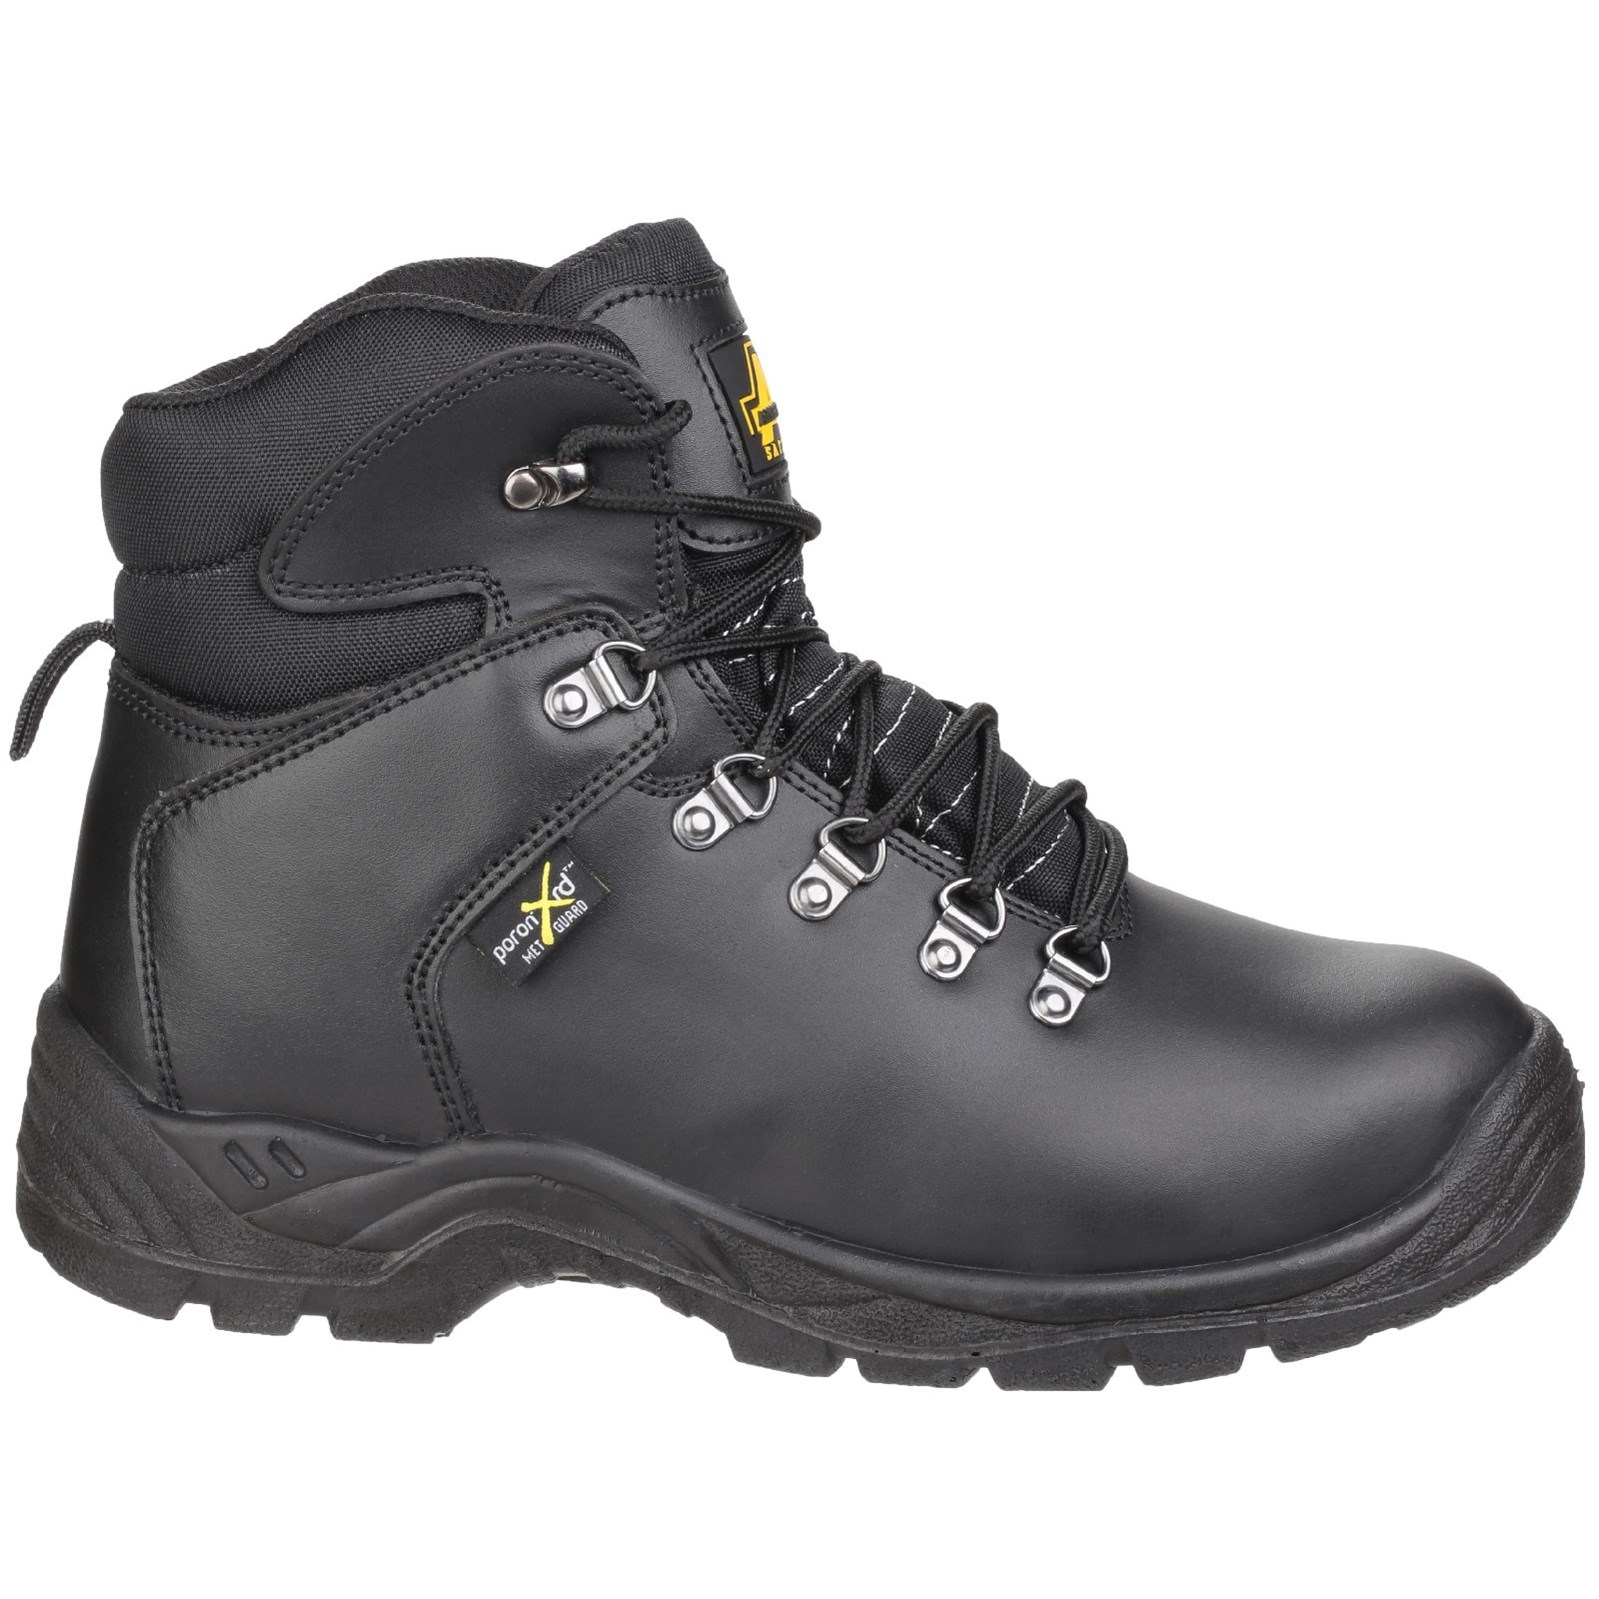 Amblers-Safety-AS335-Mens-Internal-Metatarsal-Safety-Boots-FS4630 thumbnail 13